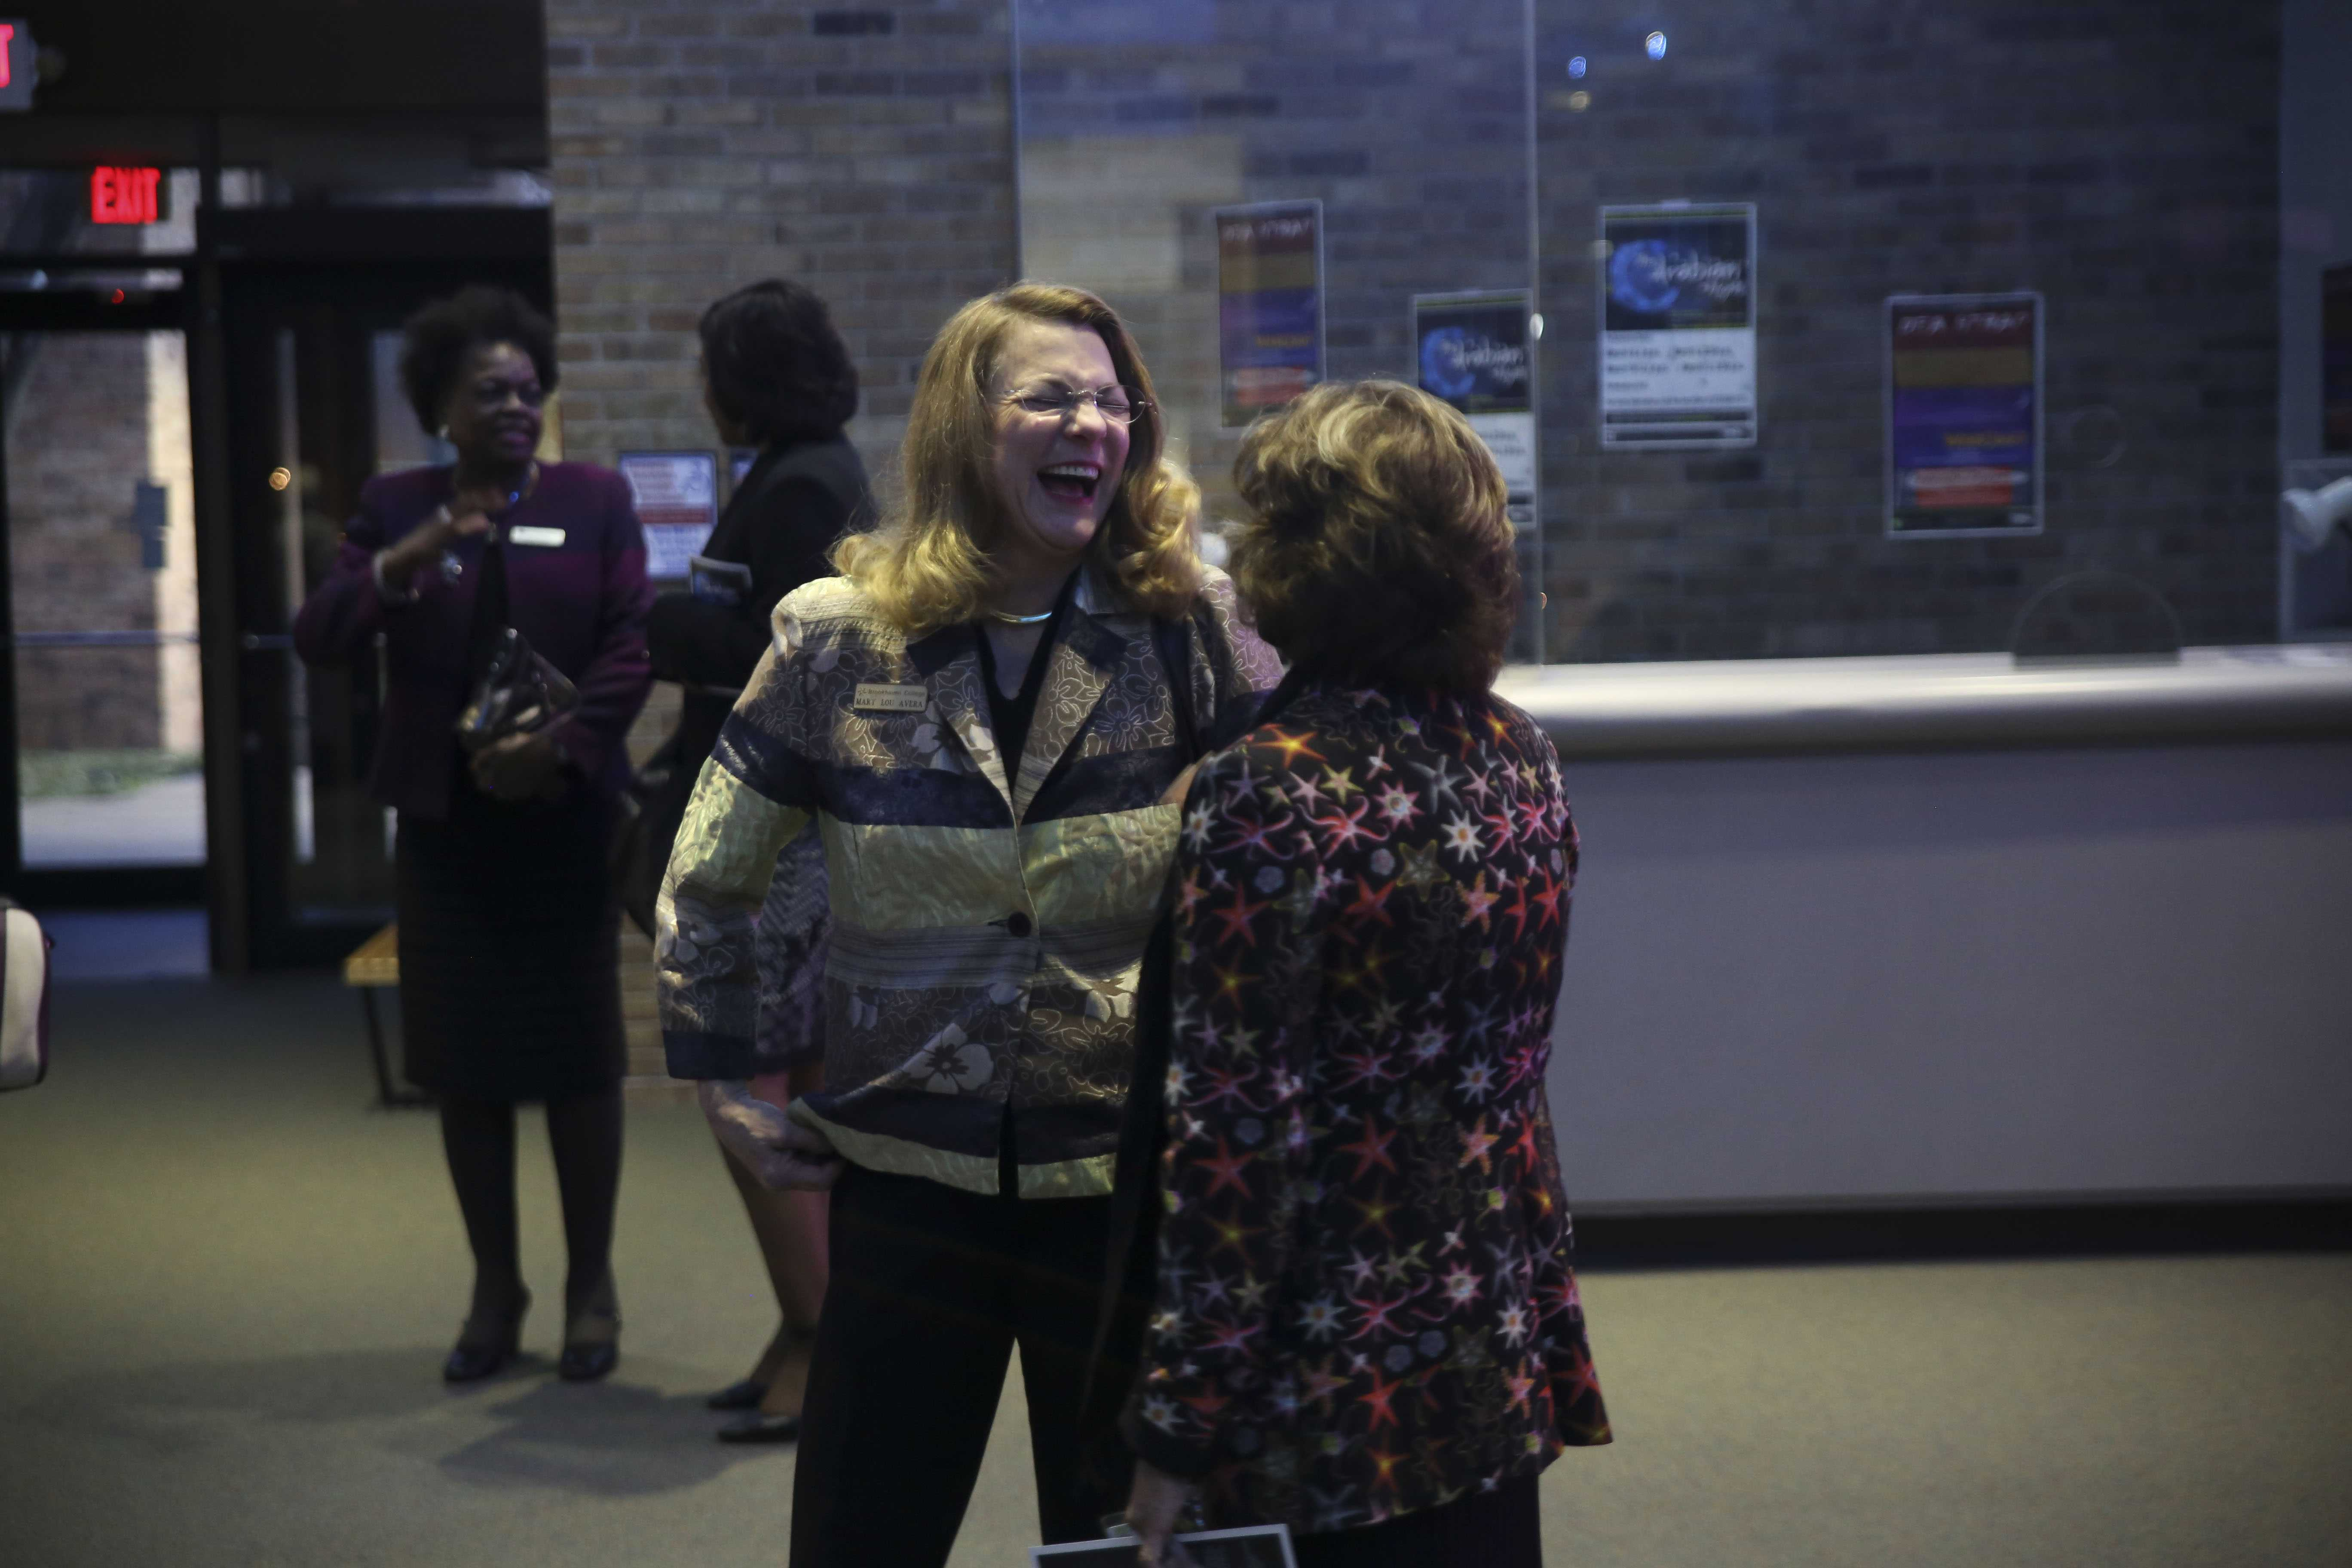 Photos by Aina Abdul-Qader | Mary Lou Avera, Brookhaven College faculty member, enjoys conversation at the alumni event.